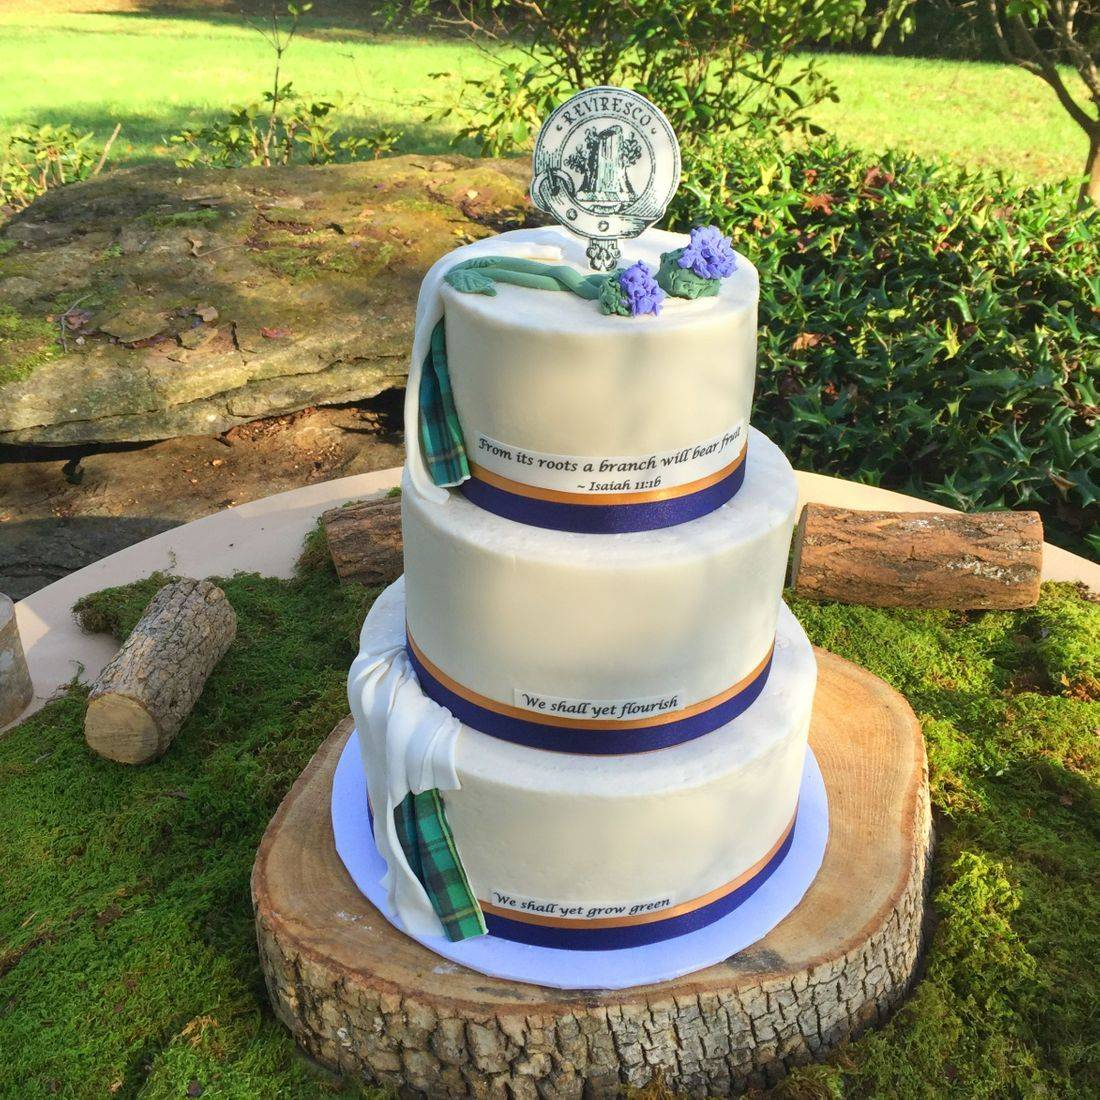 wedding cake  buttercream white scottish plaid kilt heather and thistle scotland